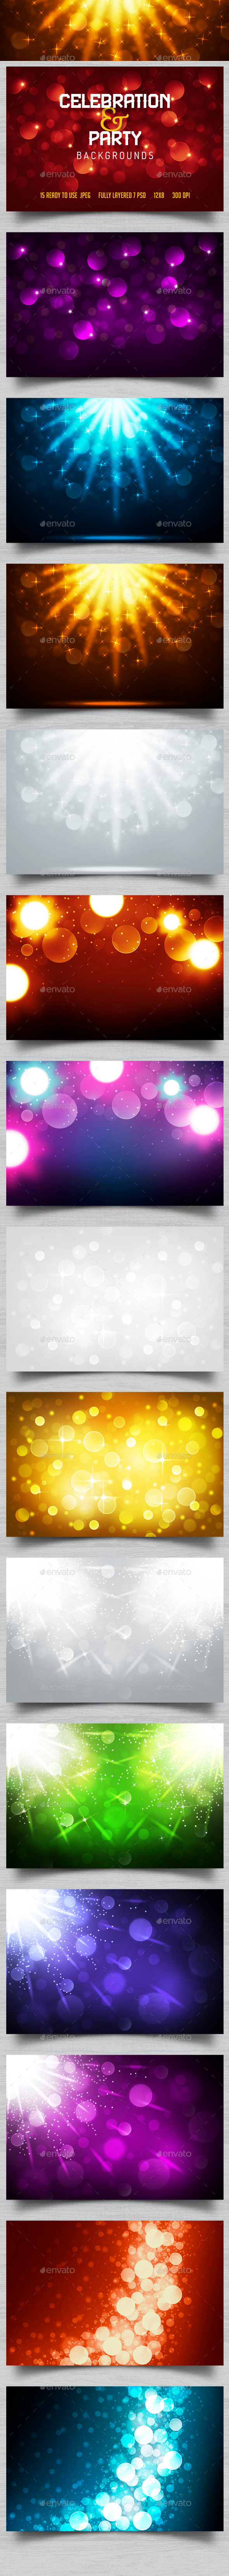 GraphicRiver Party & Celebration Backgrounds 10832131